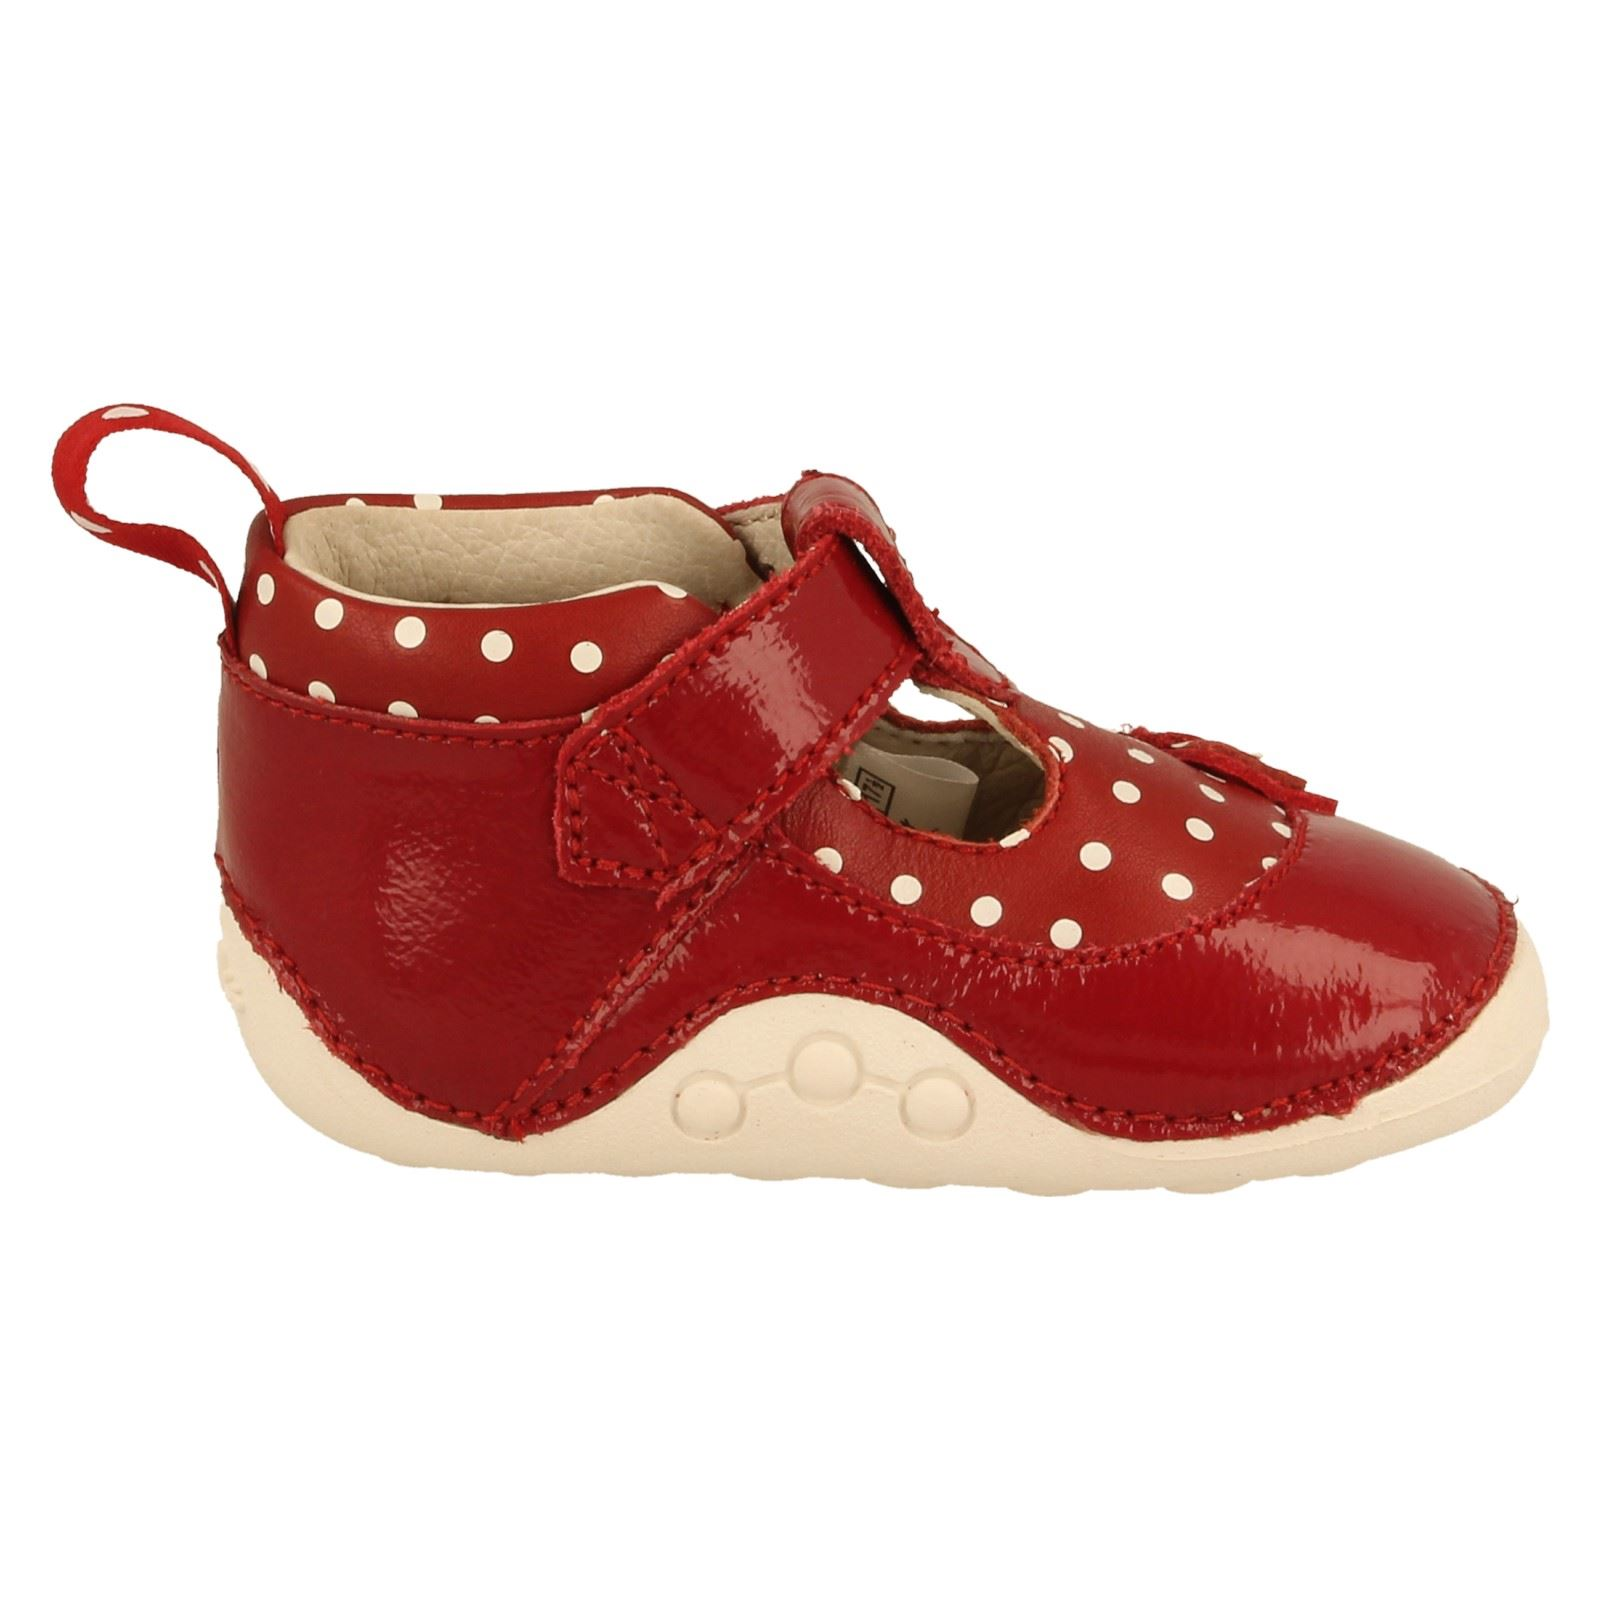 Girls Clarks First Shoes The Style Ida Delilah -W